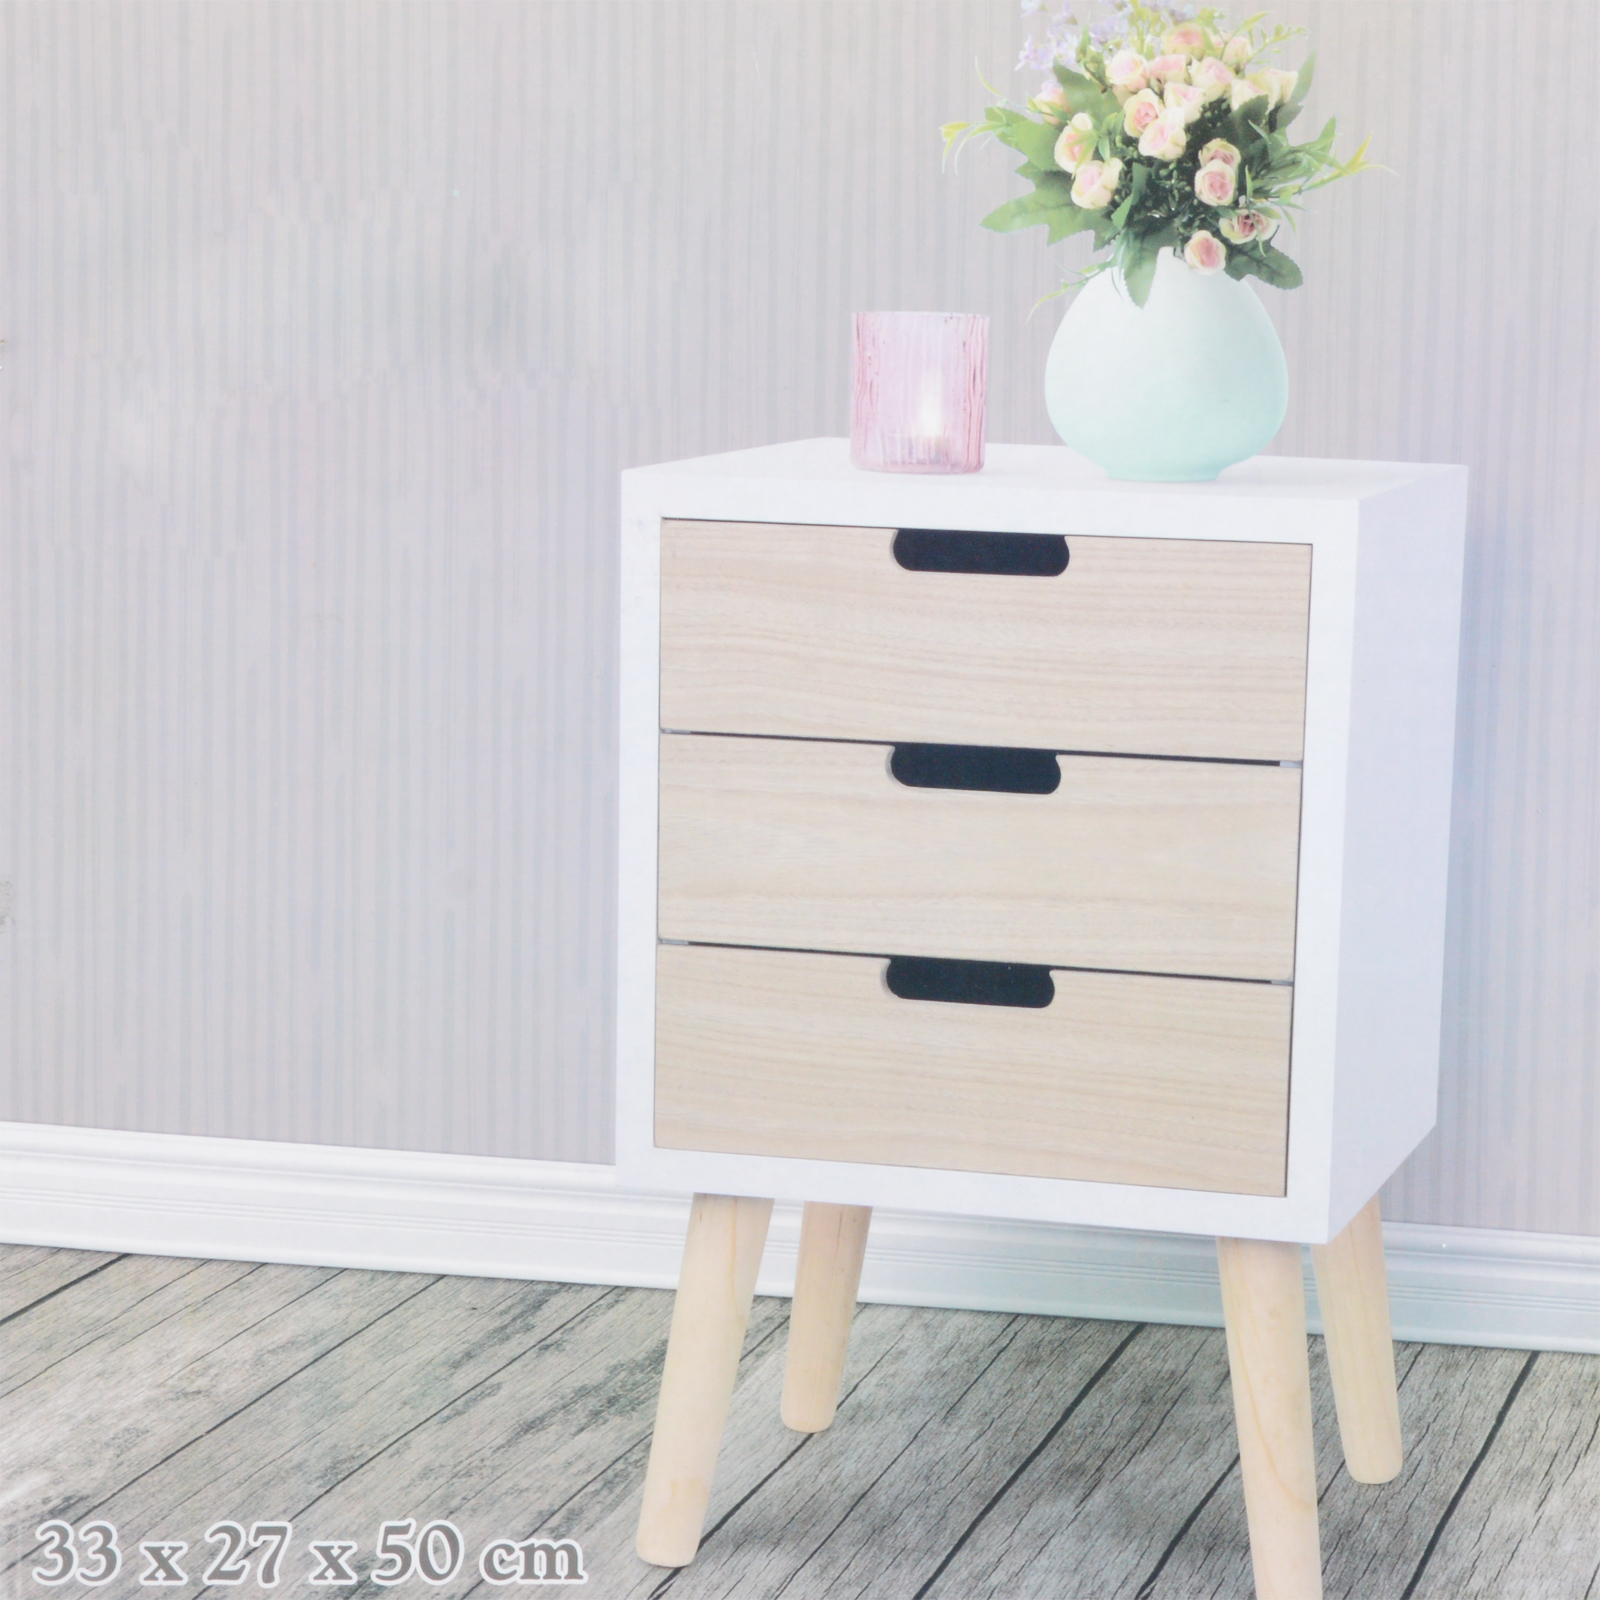 kleiner schrank schubladen holz wei natur kommode shabby chic aufbewahrung neu ebay. Black Bedroom Furniture Sets. Home Design Ideas